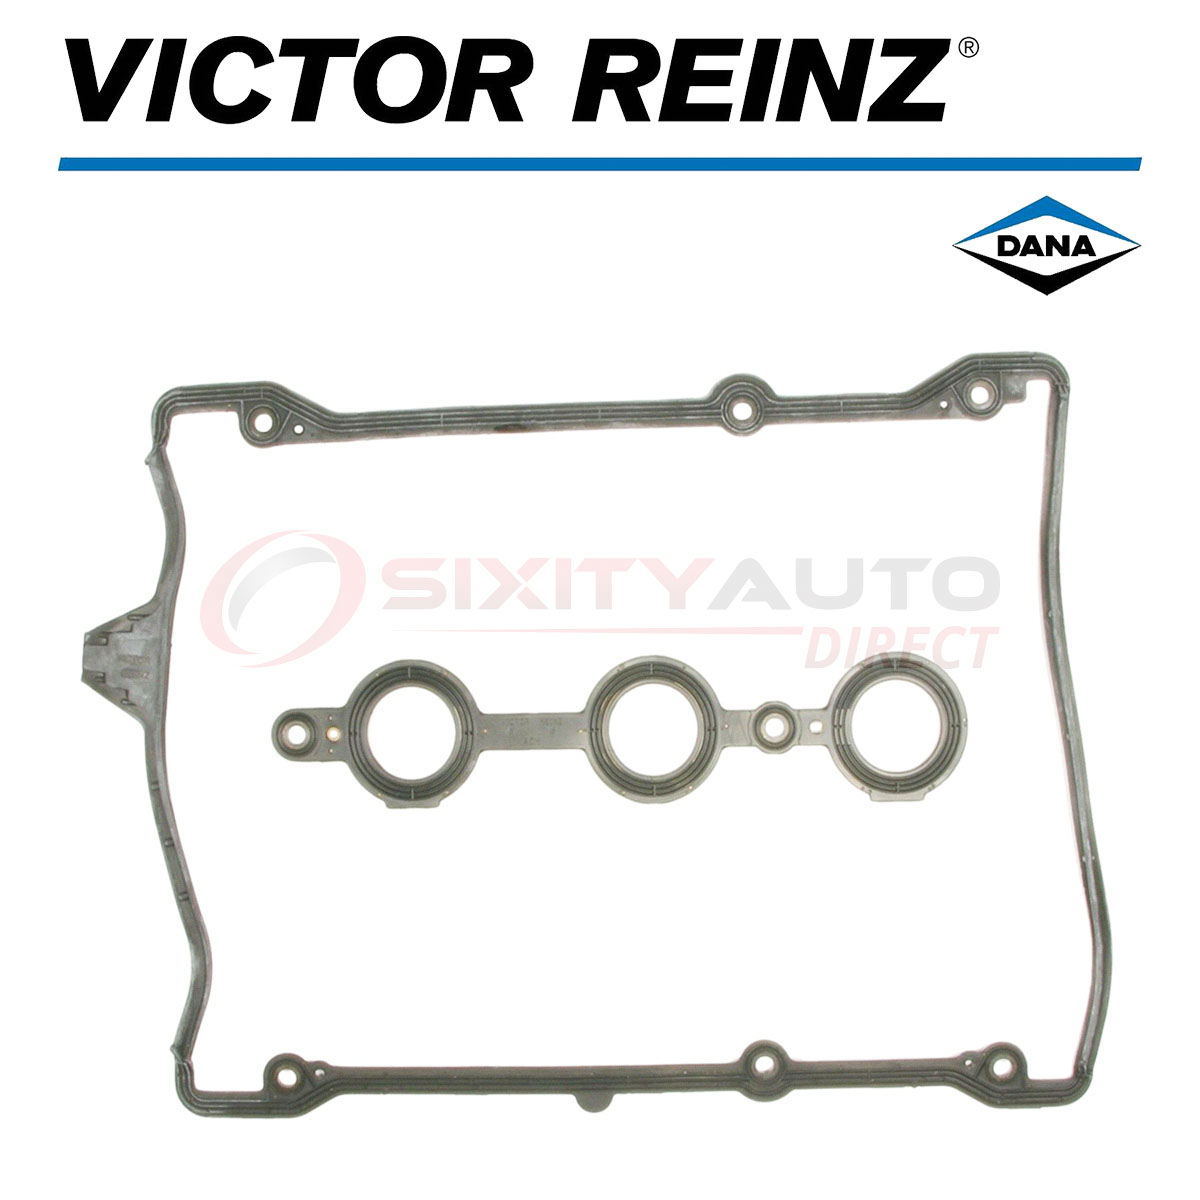 Victor Reinz Valve Cover Gasket Set for 1998-2001 Audi A4